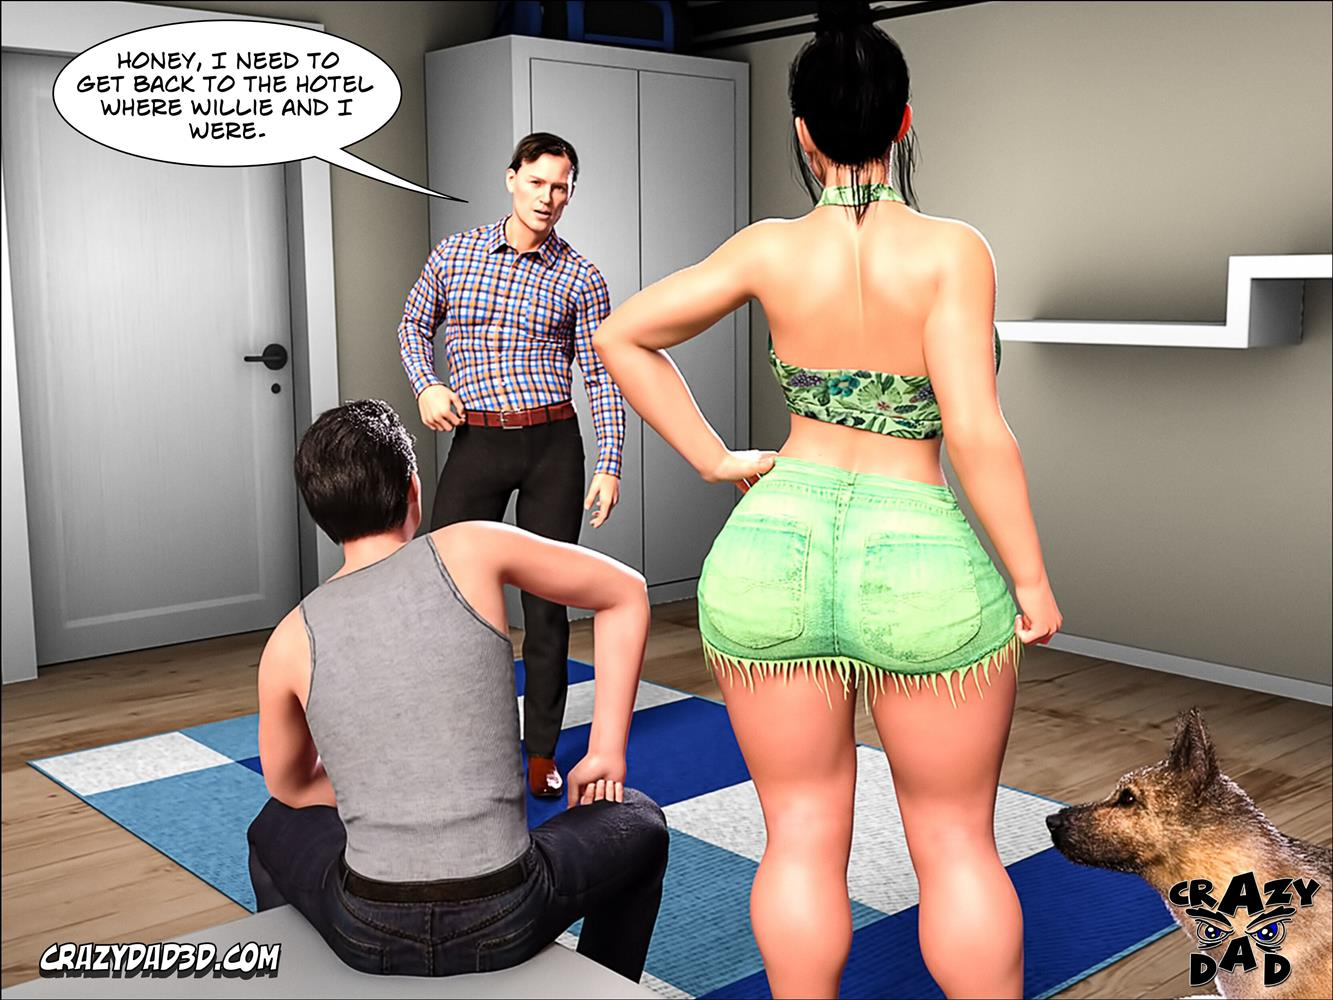 Mom's Help 21 [Crazy Dad 3D] - Foto 6